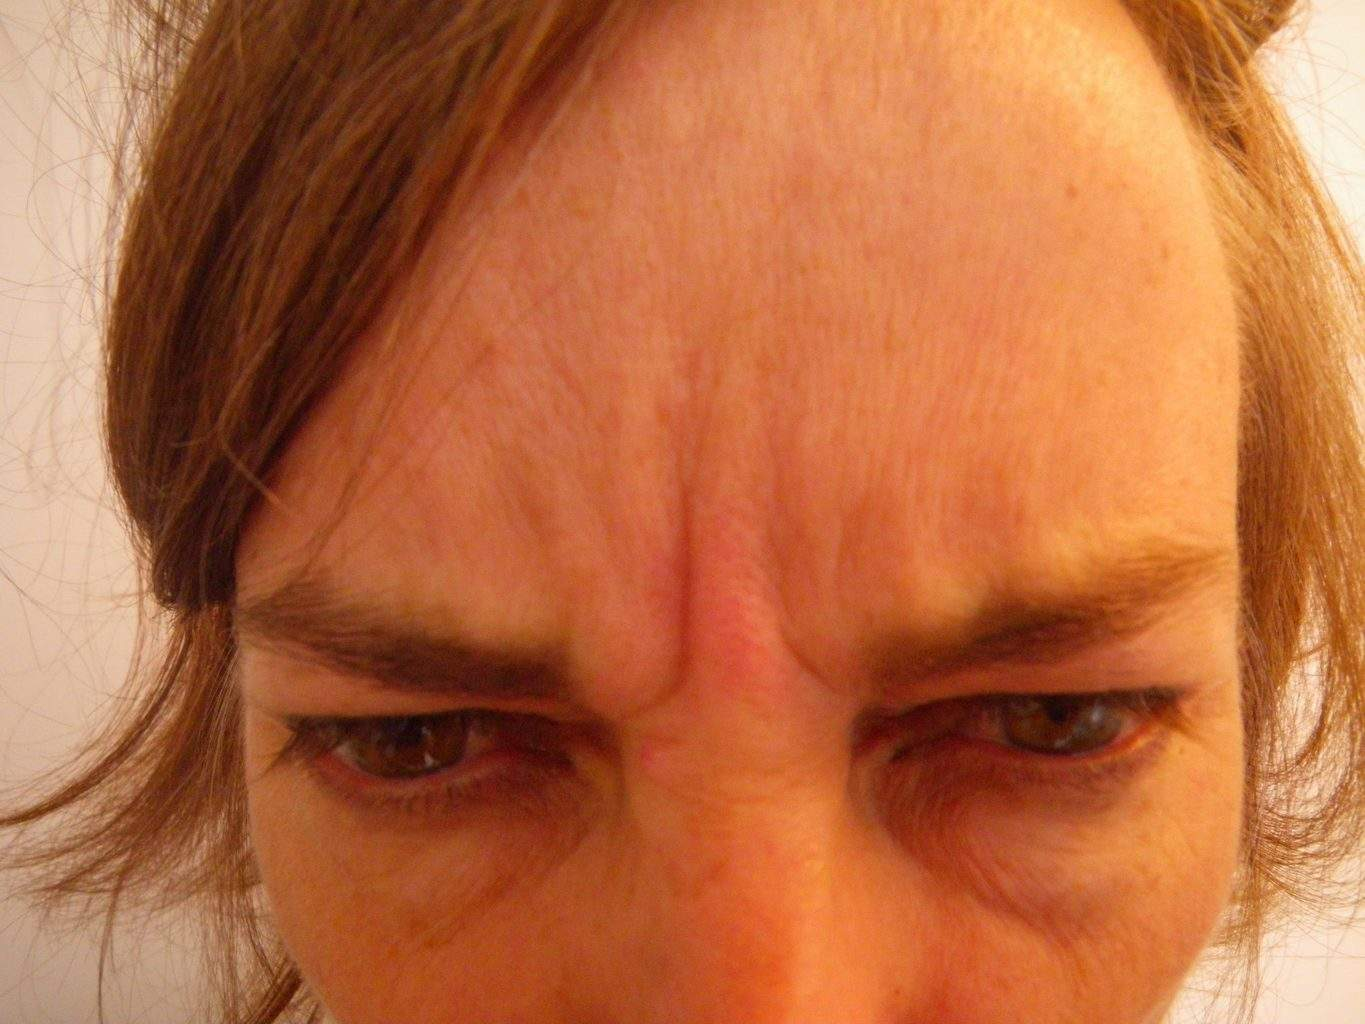 Image of post treatment forehead treated with Dysport or Botox Paralytic with excellent result